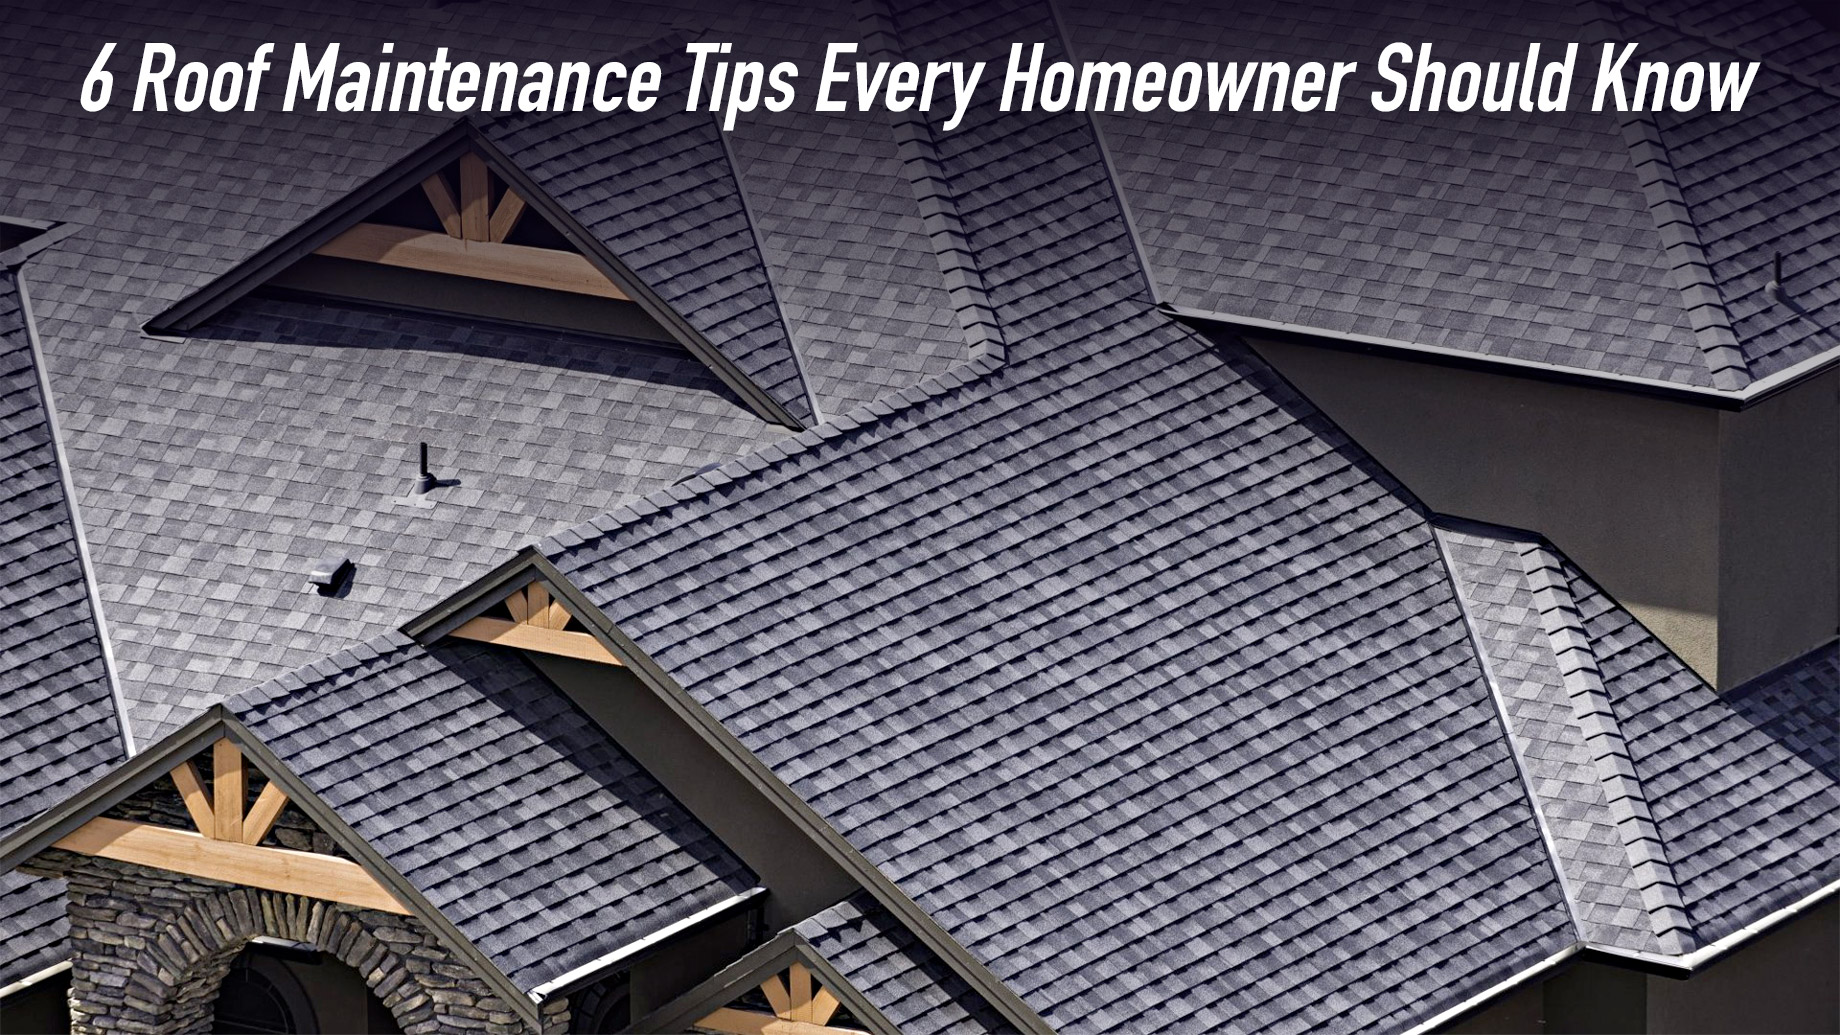 6 Roof Maintenance Tips Every Homeowner Should Know